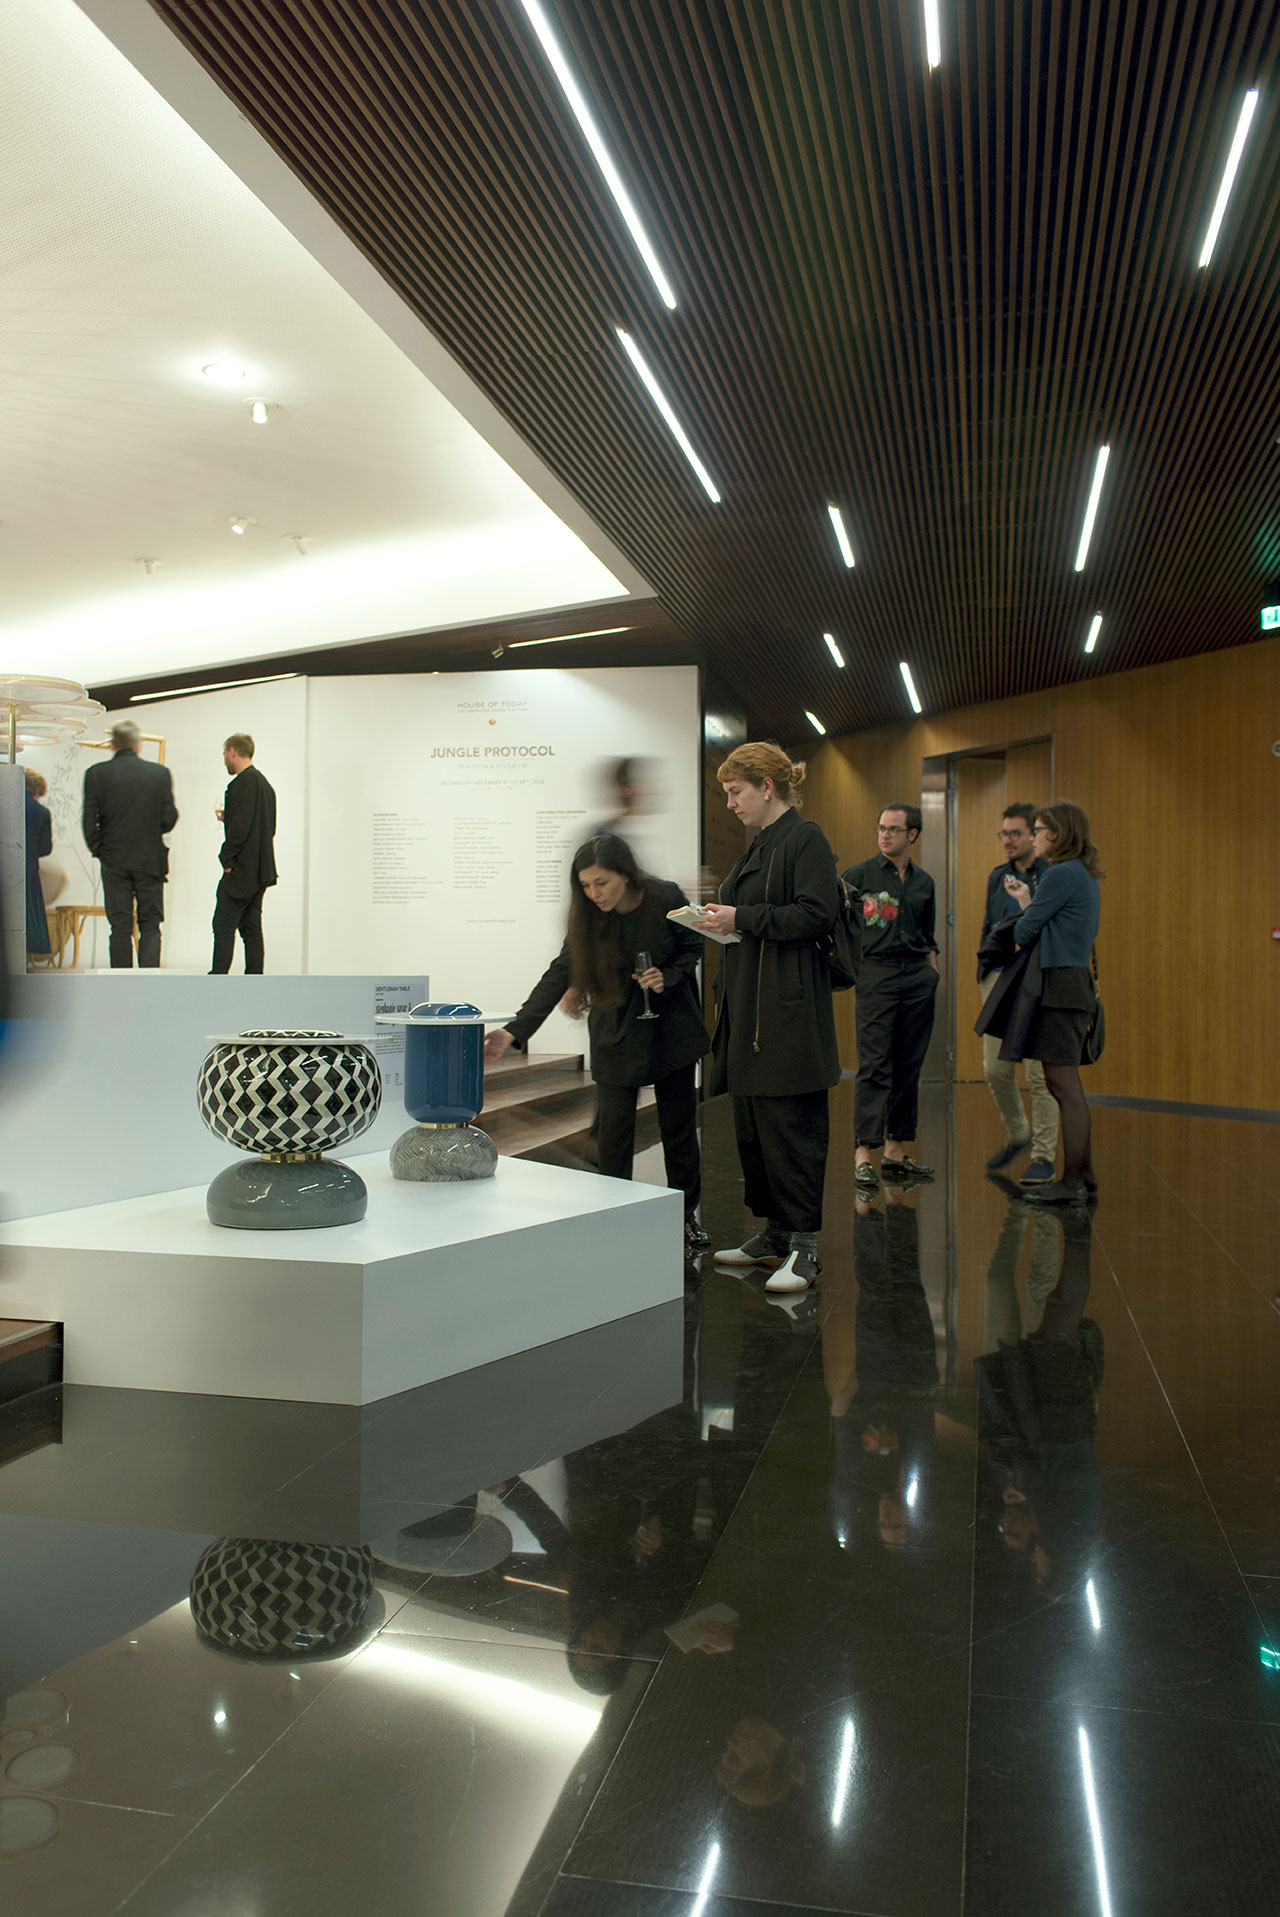 Installation view from the opening day of Jungle Protocol.